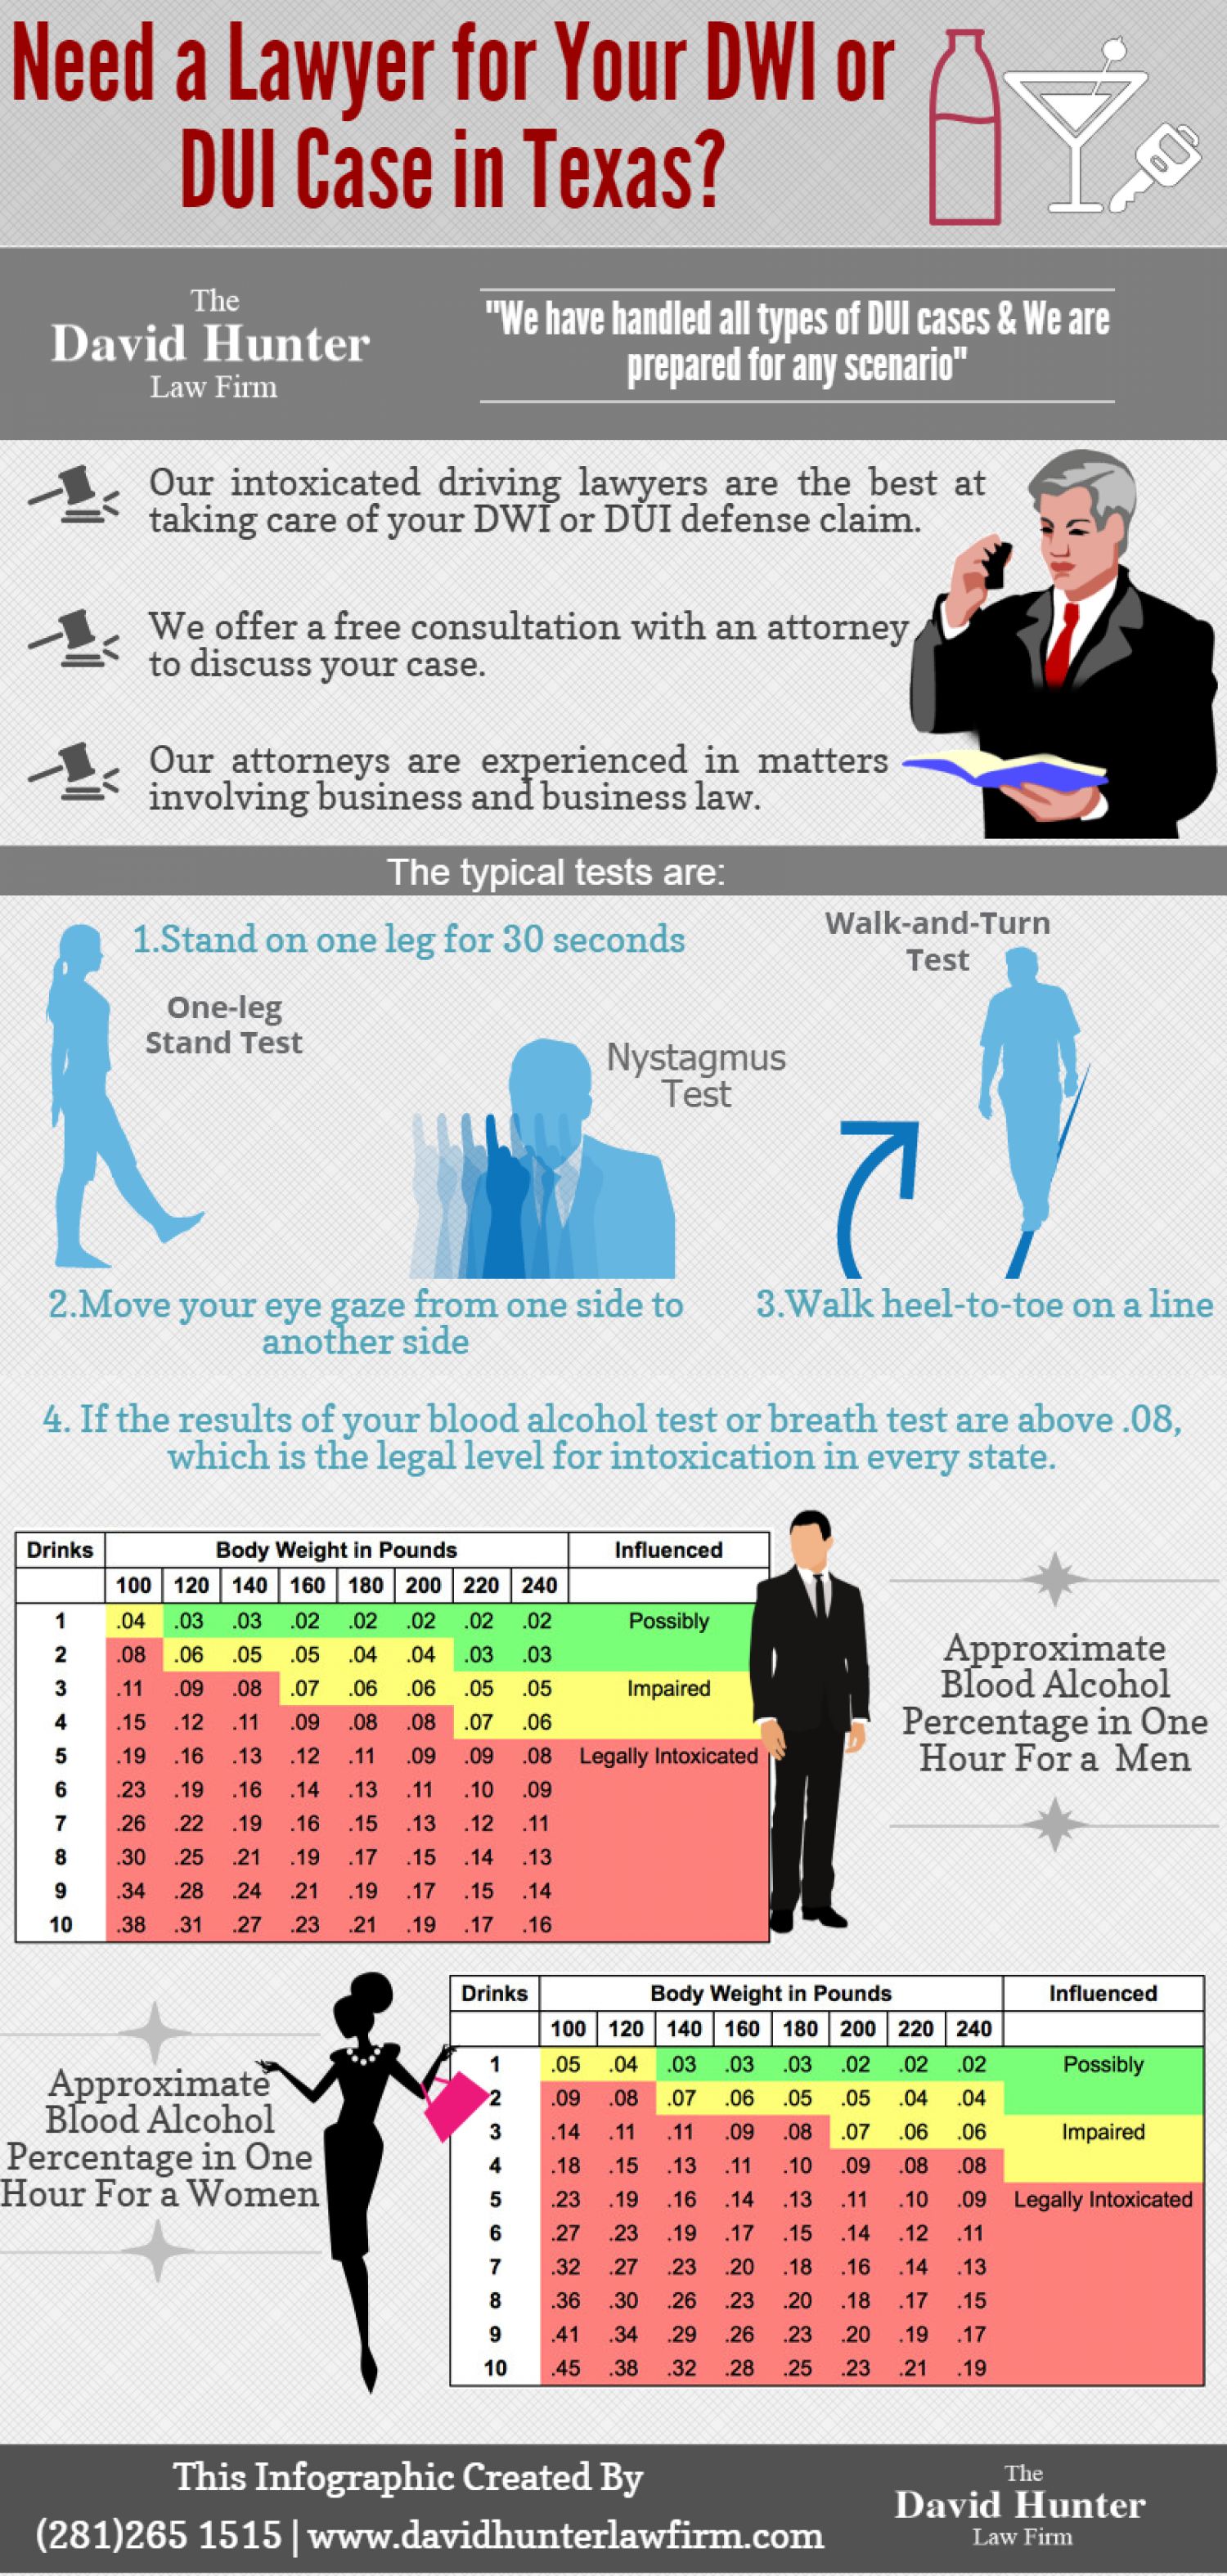 DUI Defense Lawyers in Texas Infographic